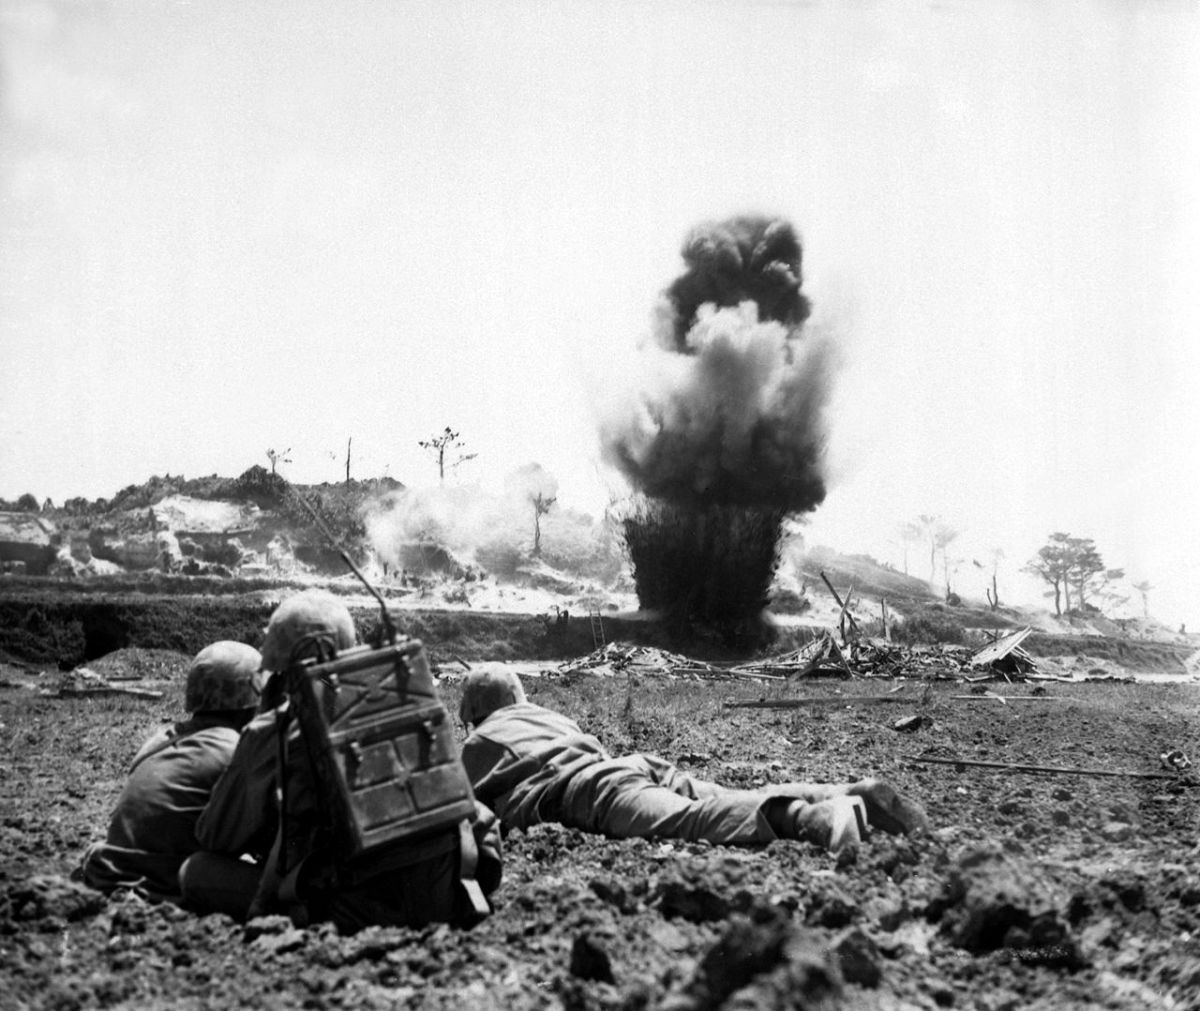 A 6th Marine Division demolition crew watches explosive charges detonate and destroy a Japanese cave, May 1945.